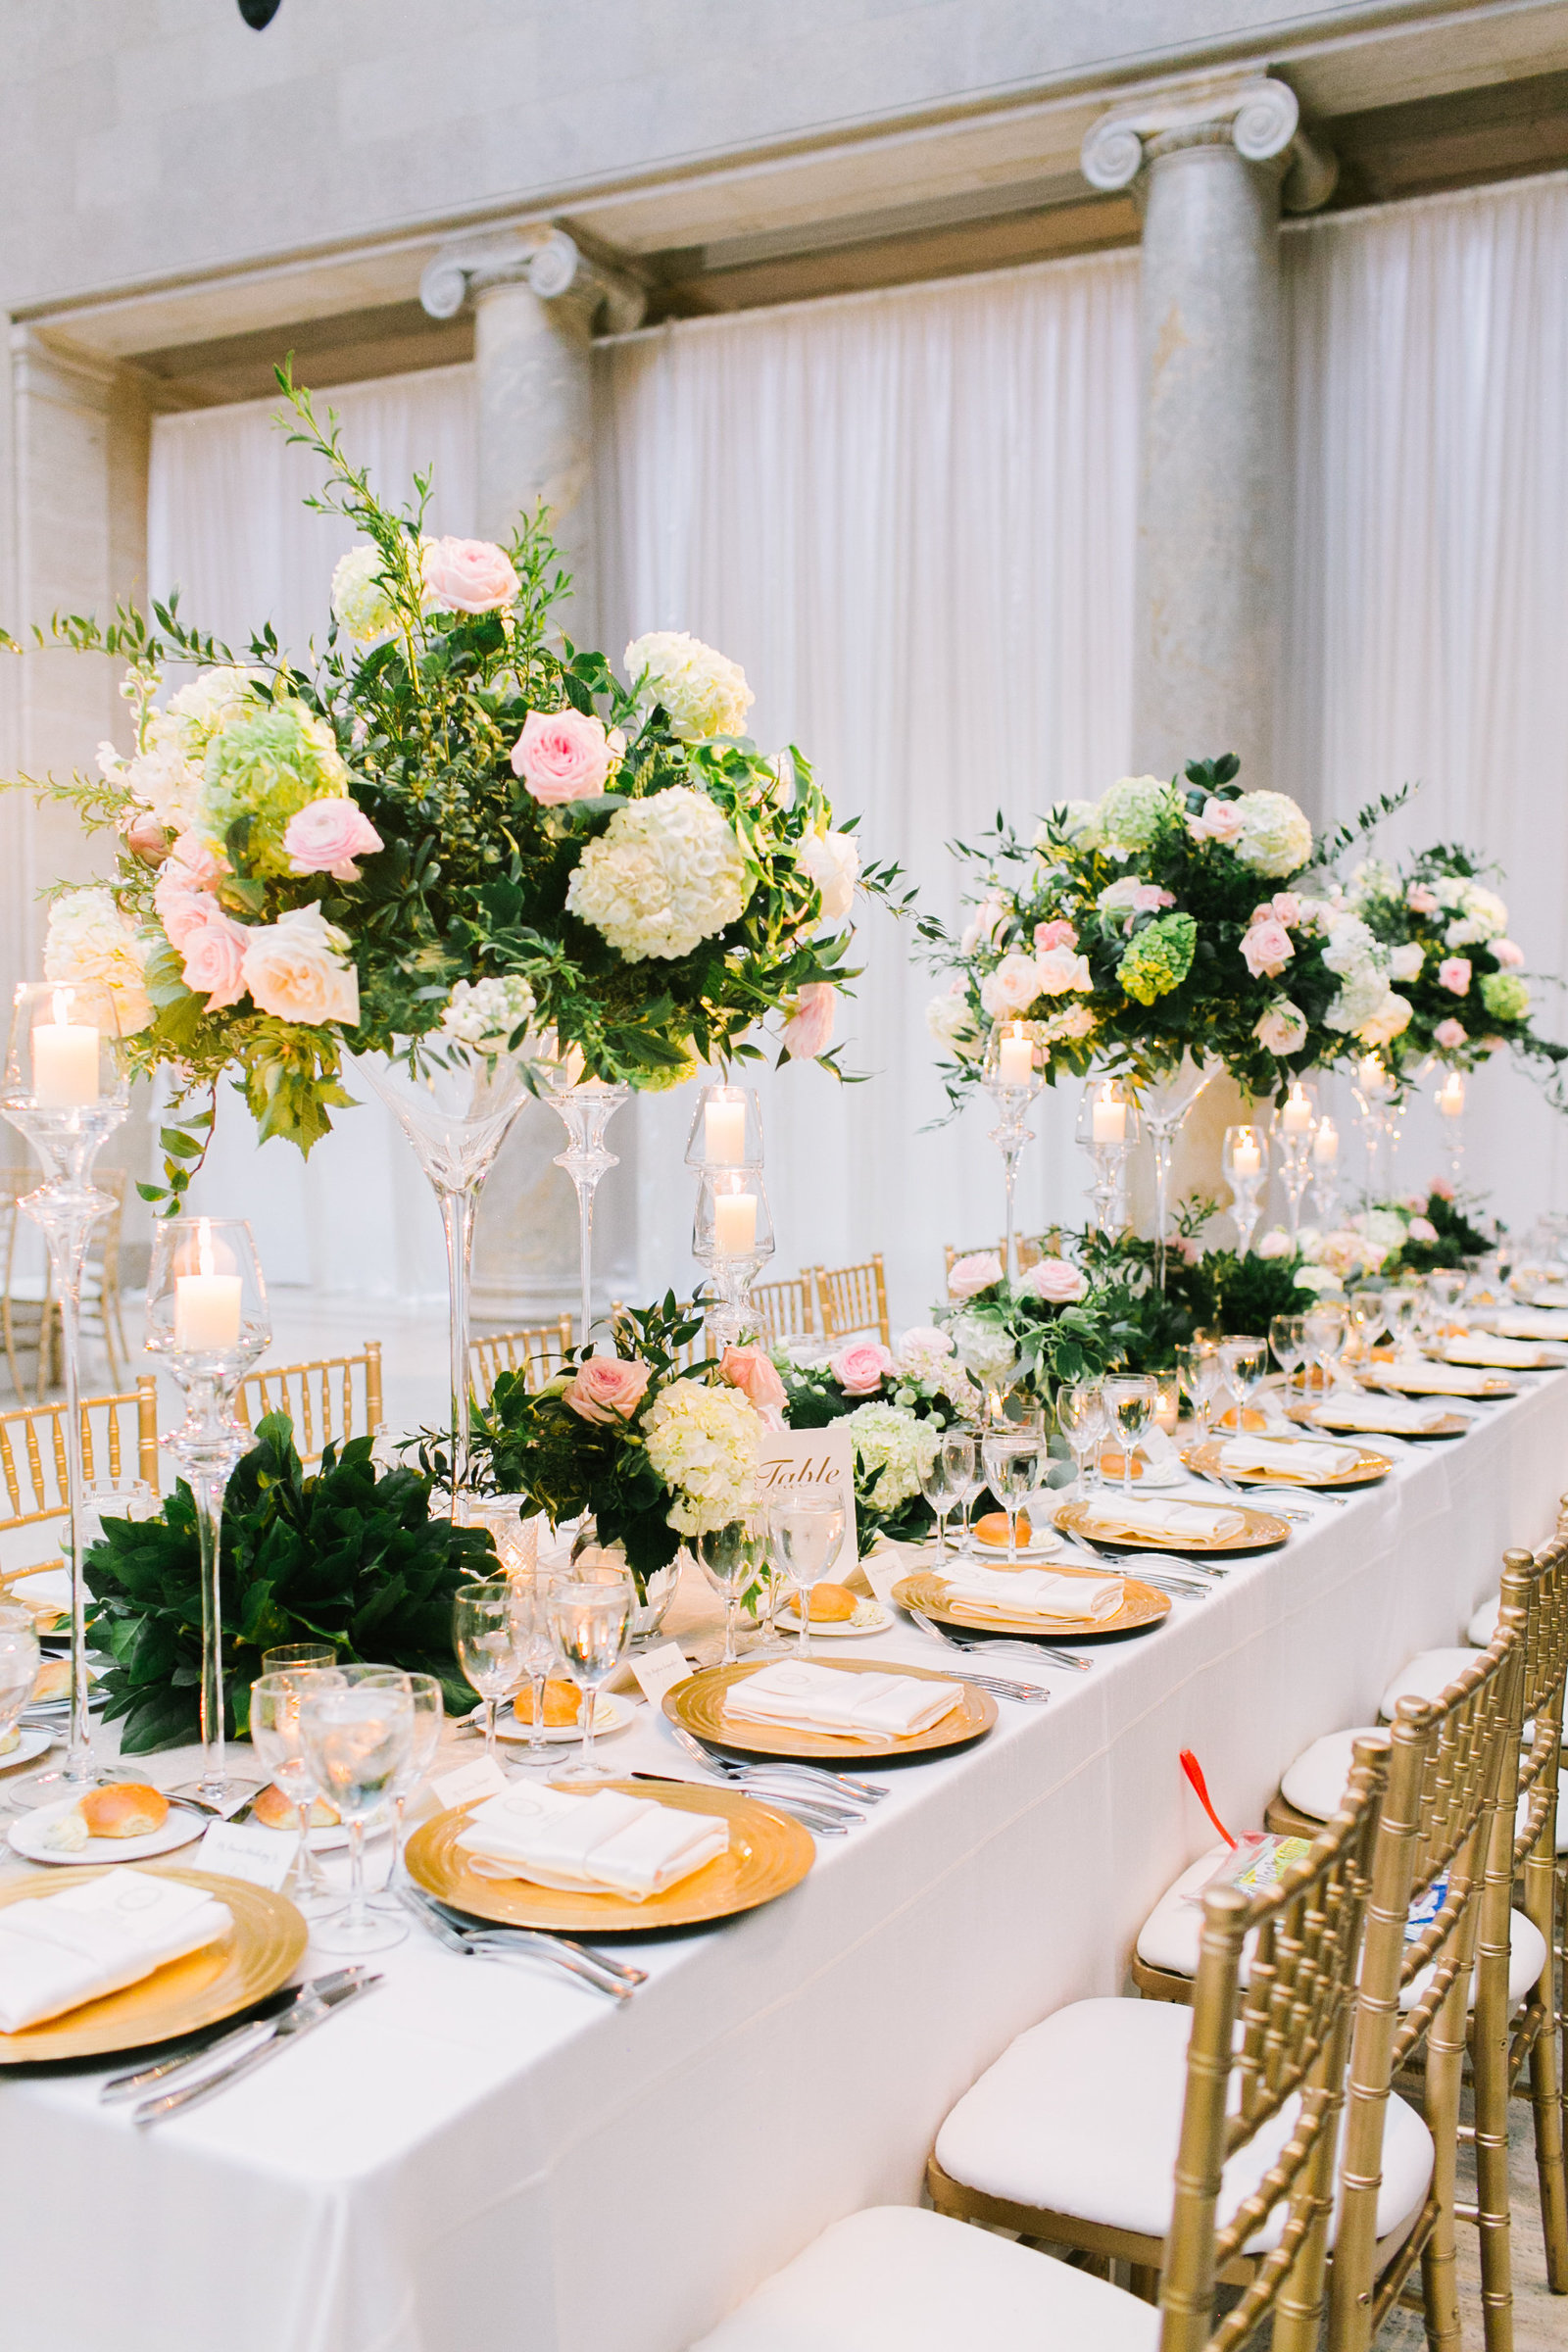 Nelson-Atkins-Kansas-City-Luxury-Garden-Wedding-Planning-Madison-Sanders-559